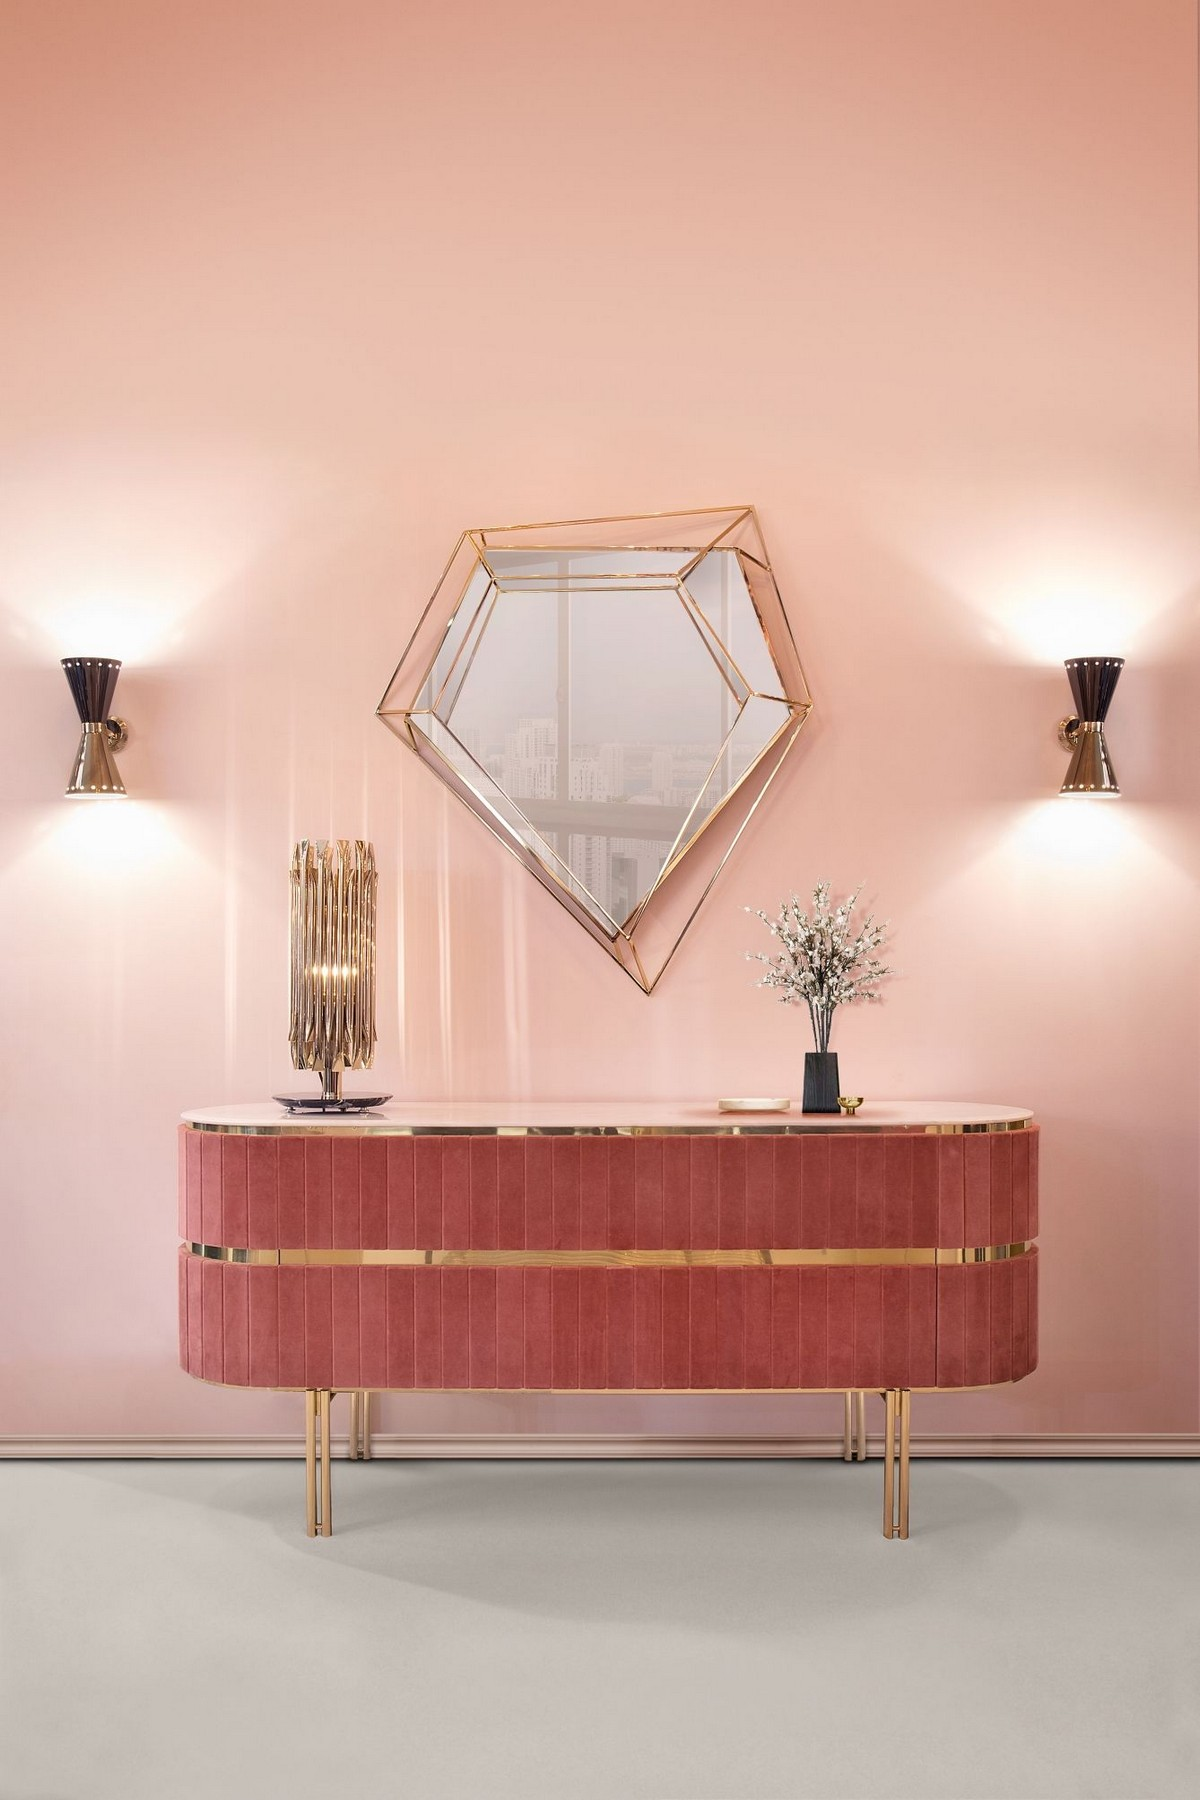 Incredible Home Design Tips to Use Mirrors! home design Home Design Tips To Use Mirrors The Right Way! deisgn tips 5